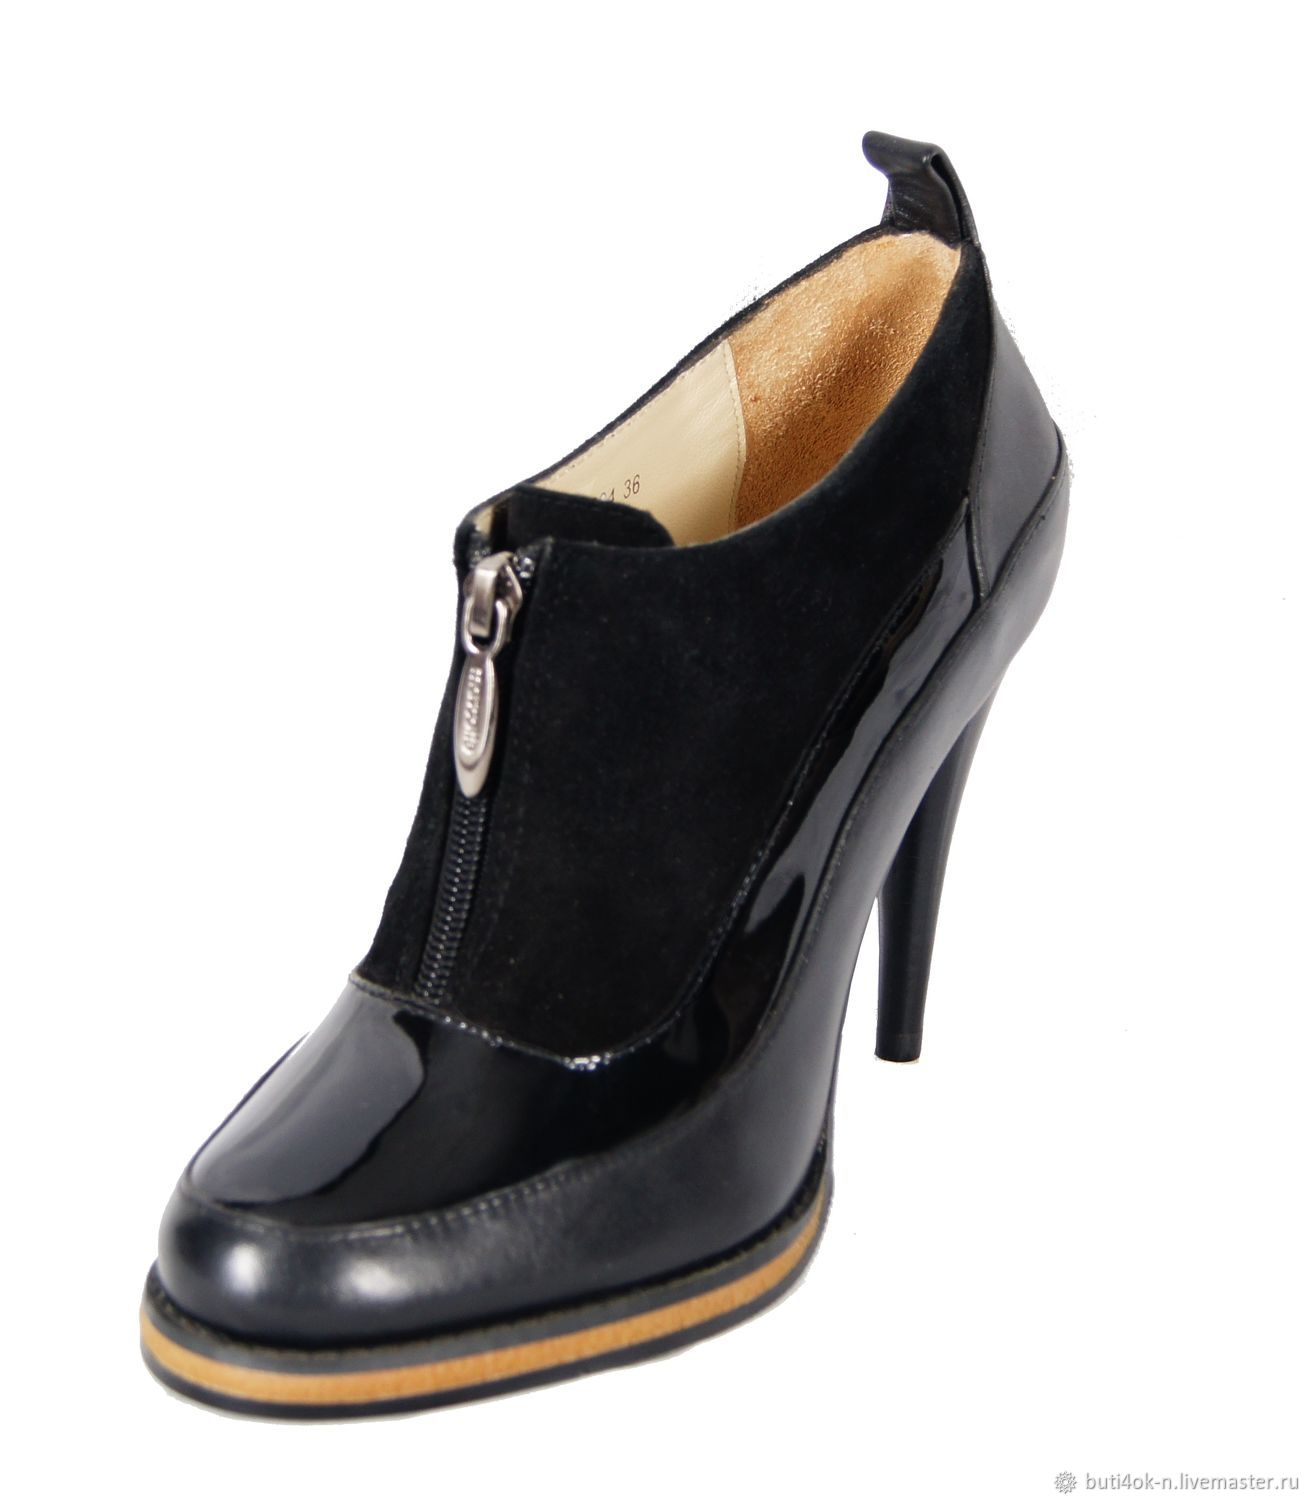 Ankle boots genuine leather and suede black, Ankle boots, Nelidovo,  Фото №1